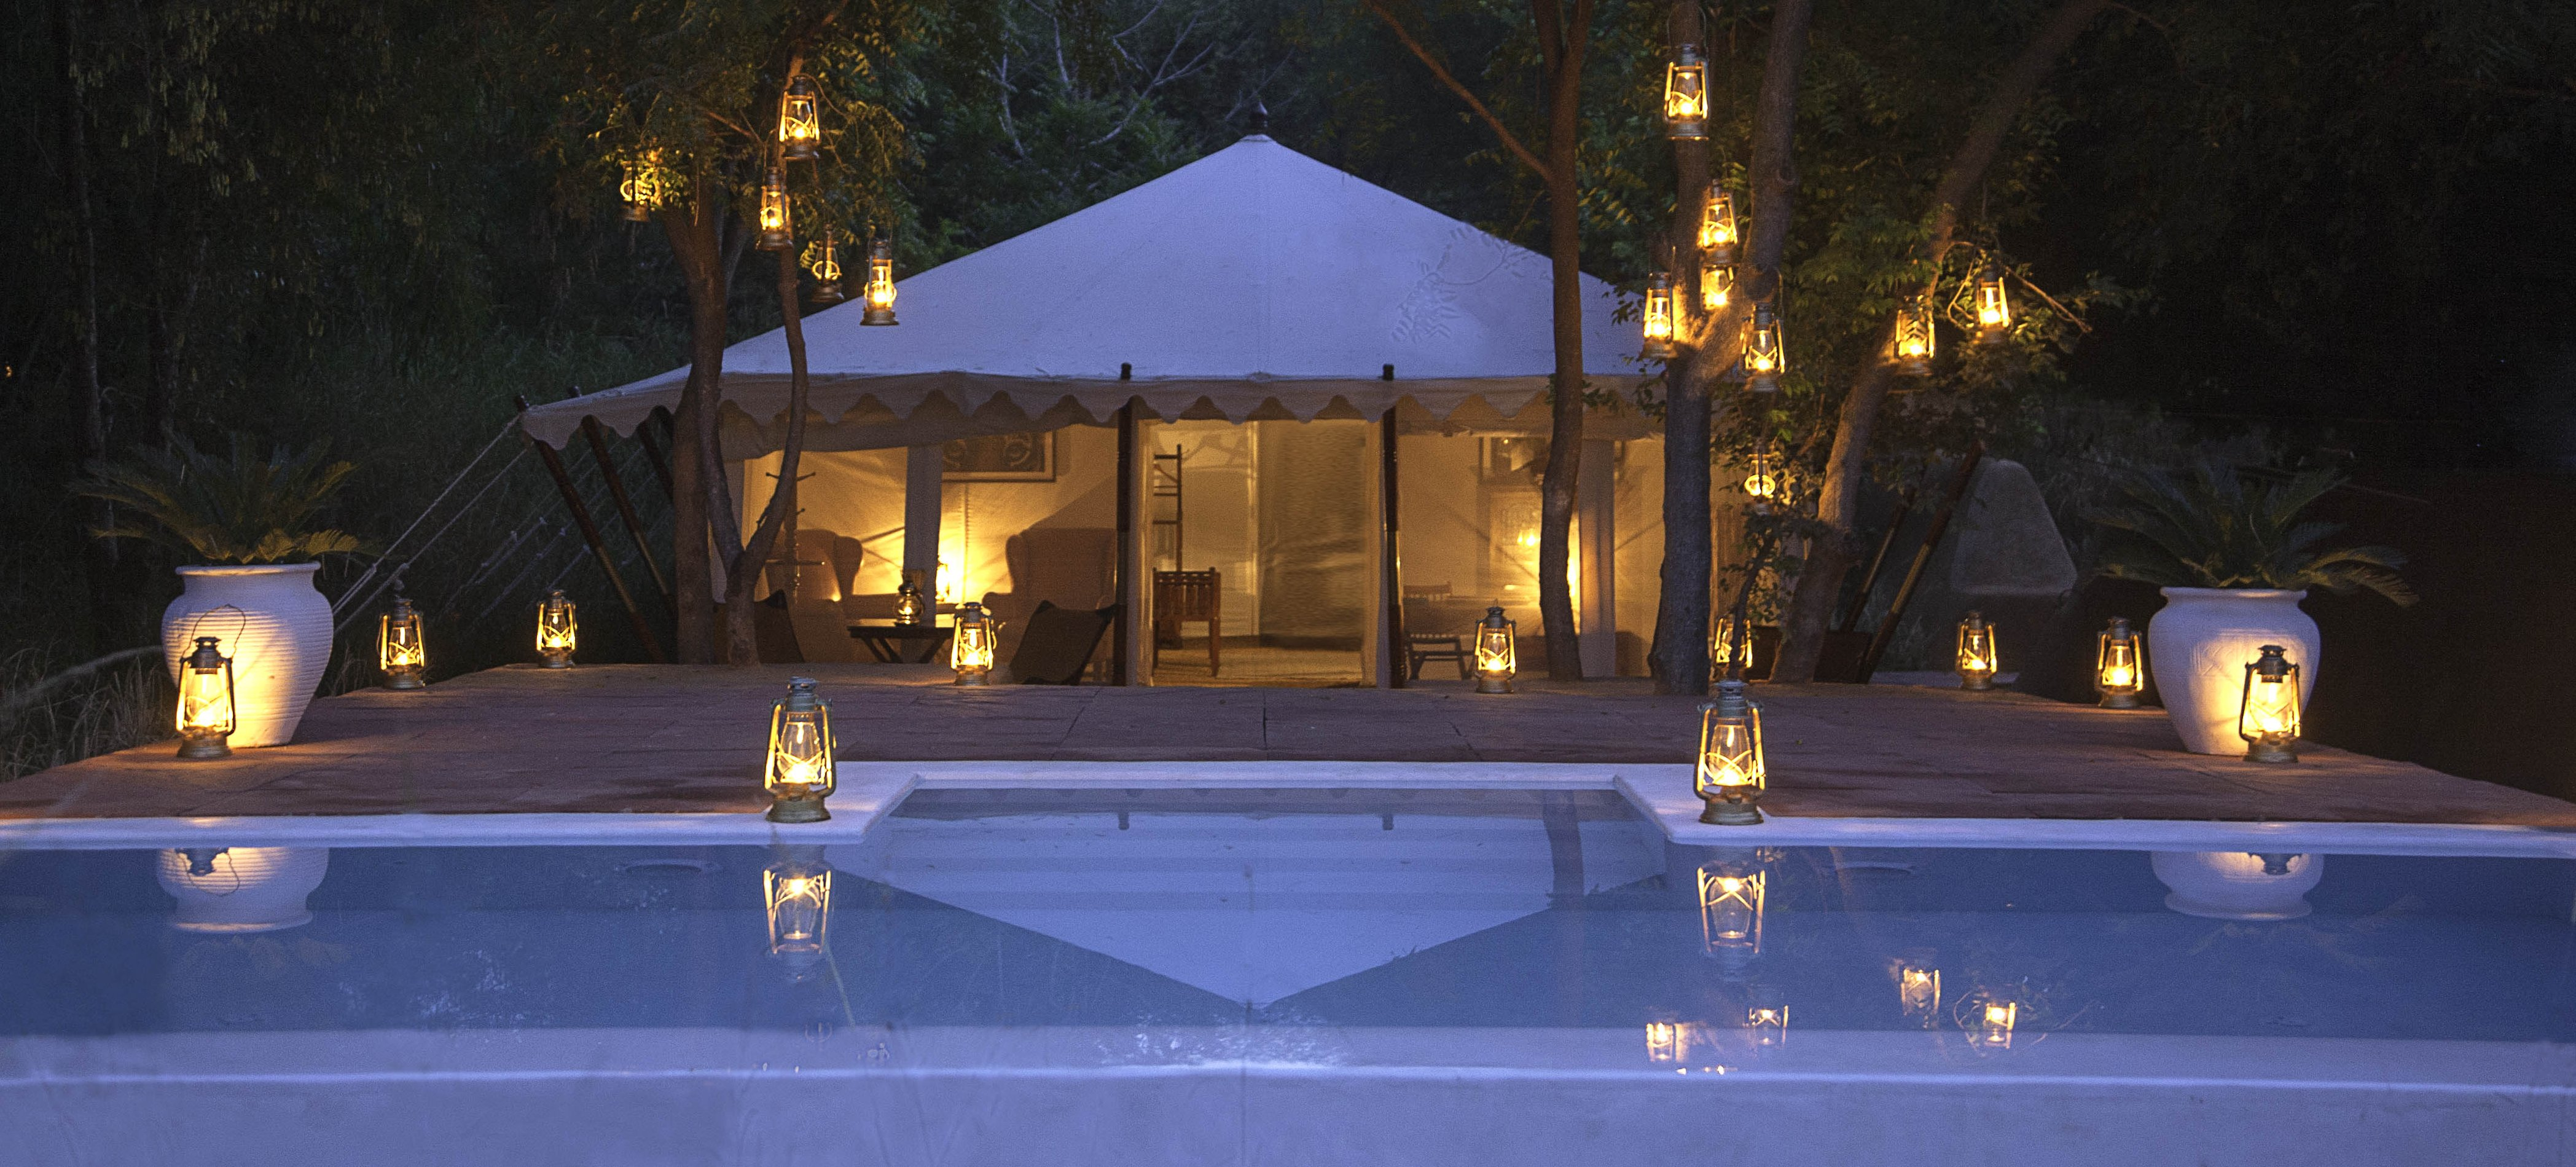 sher-bagh-royal-tented-suite